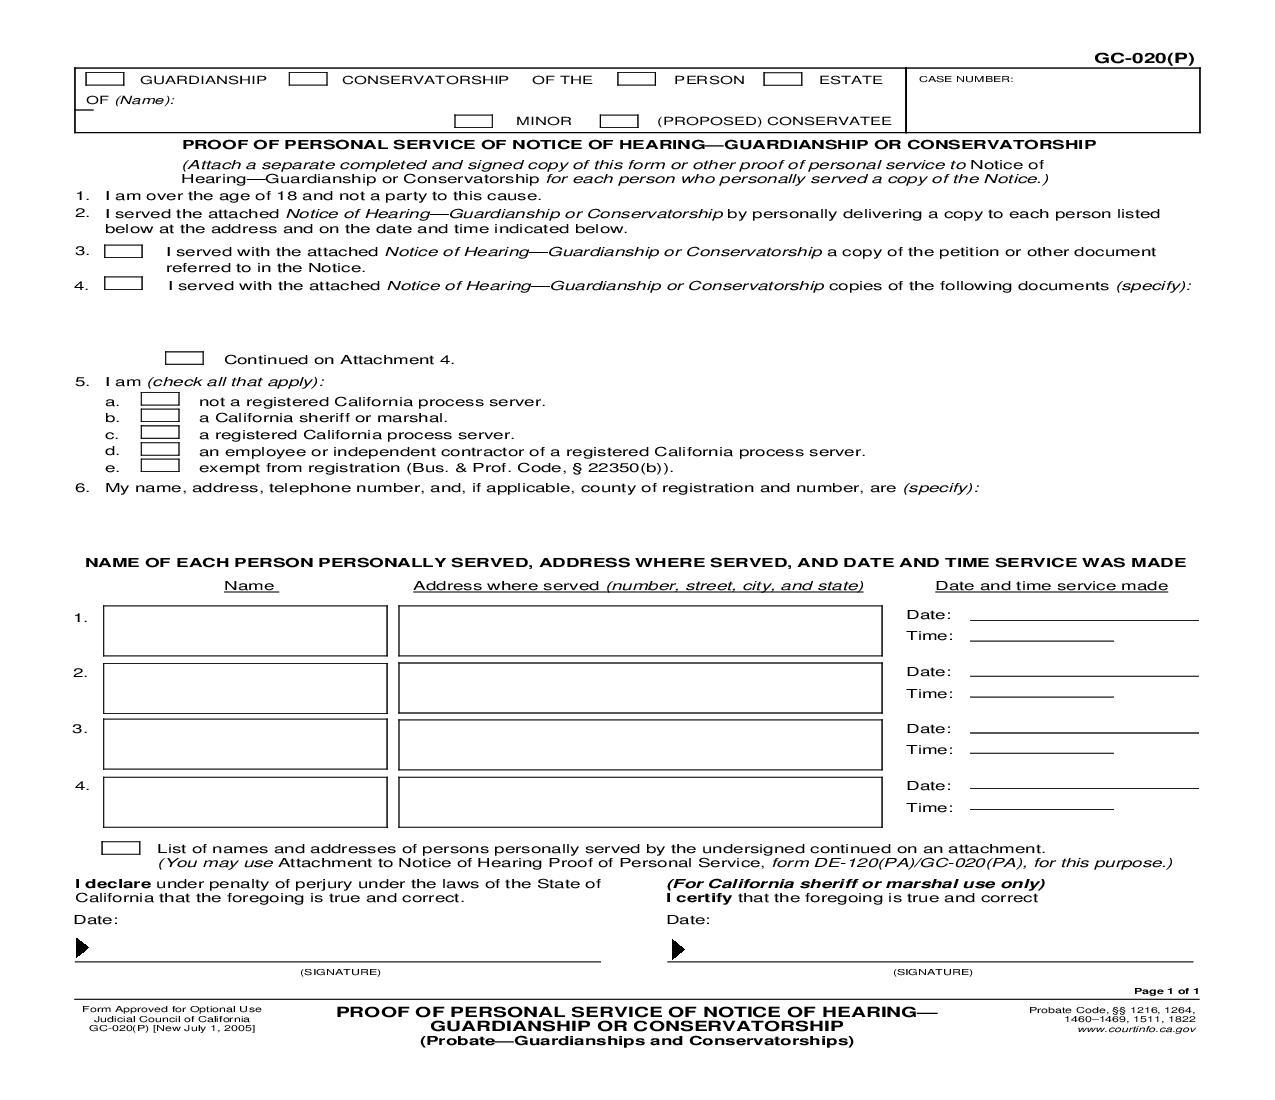 Proof Of Personal Service Of Notice Of Hearing-Guardianship Or Conservatorship (Probate-Guardianships) {GC-020(P)}   Pdf Fpdf Doc Docx   California